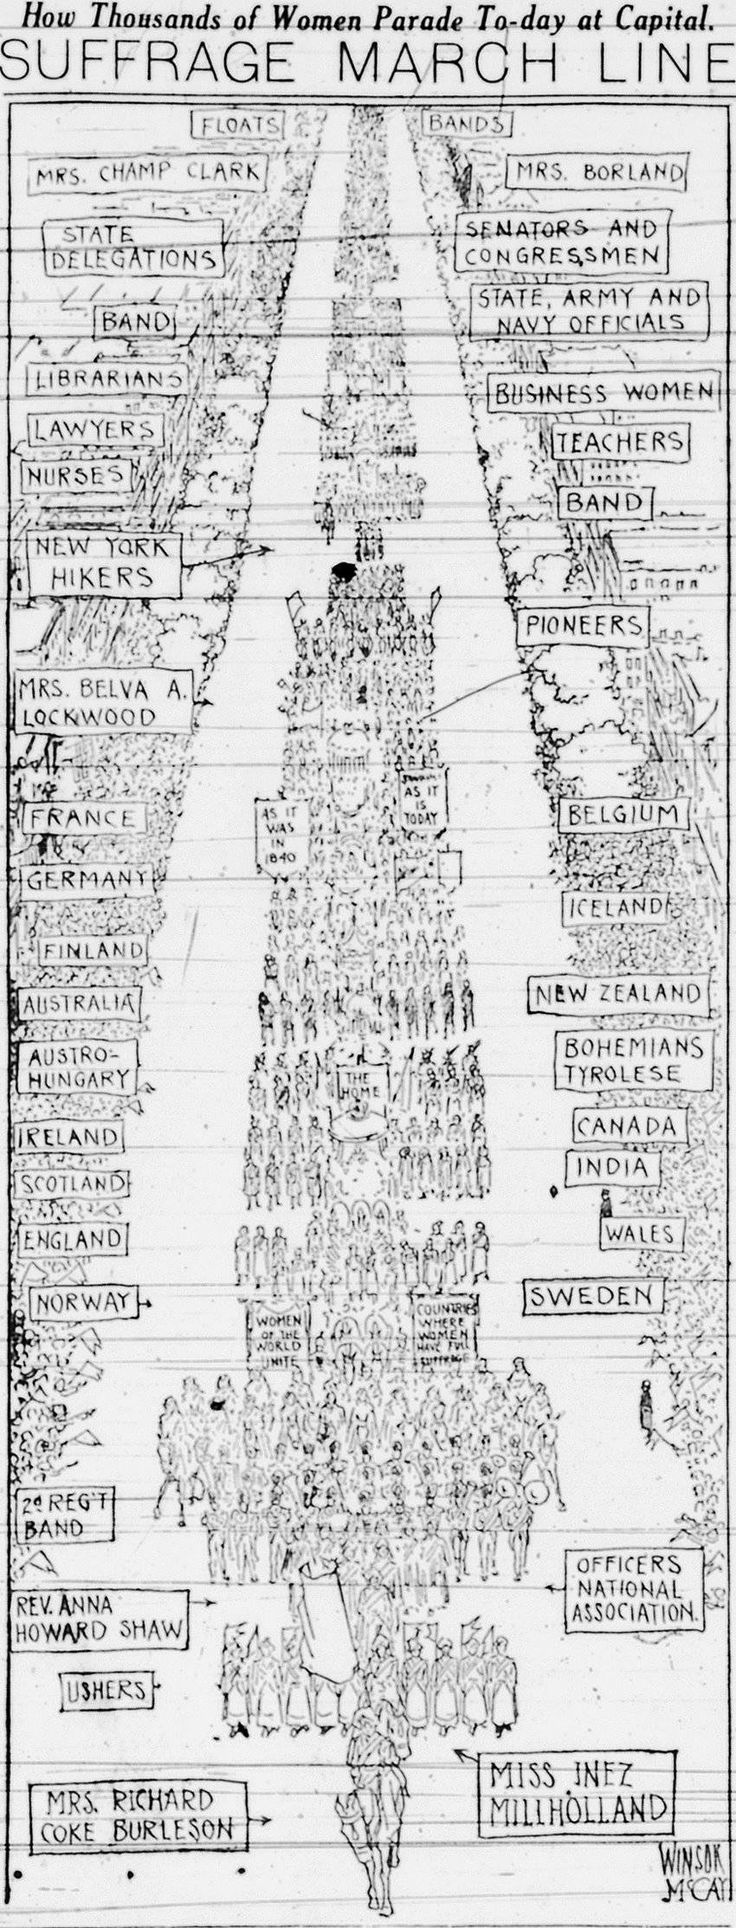 Diagram of Woman Suffrage Parade Formation  1913 Suffrage March - Washington, DC  Layout from contemporary newspaper shows women marchers organized by country, state, occupation, and organization.